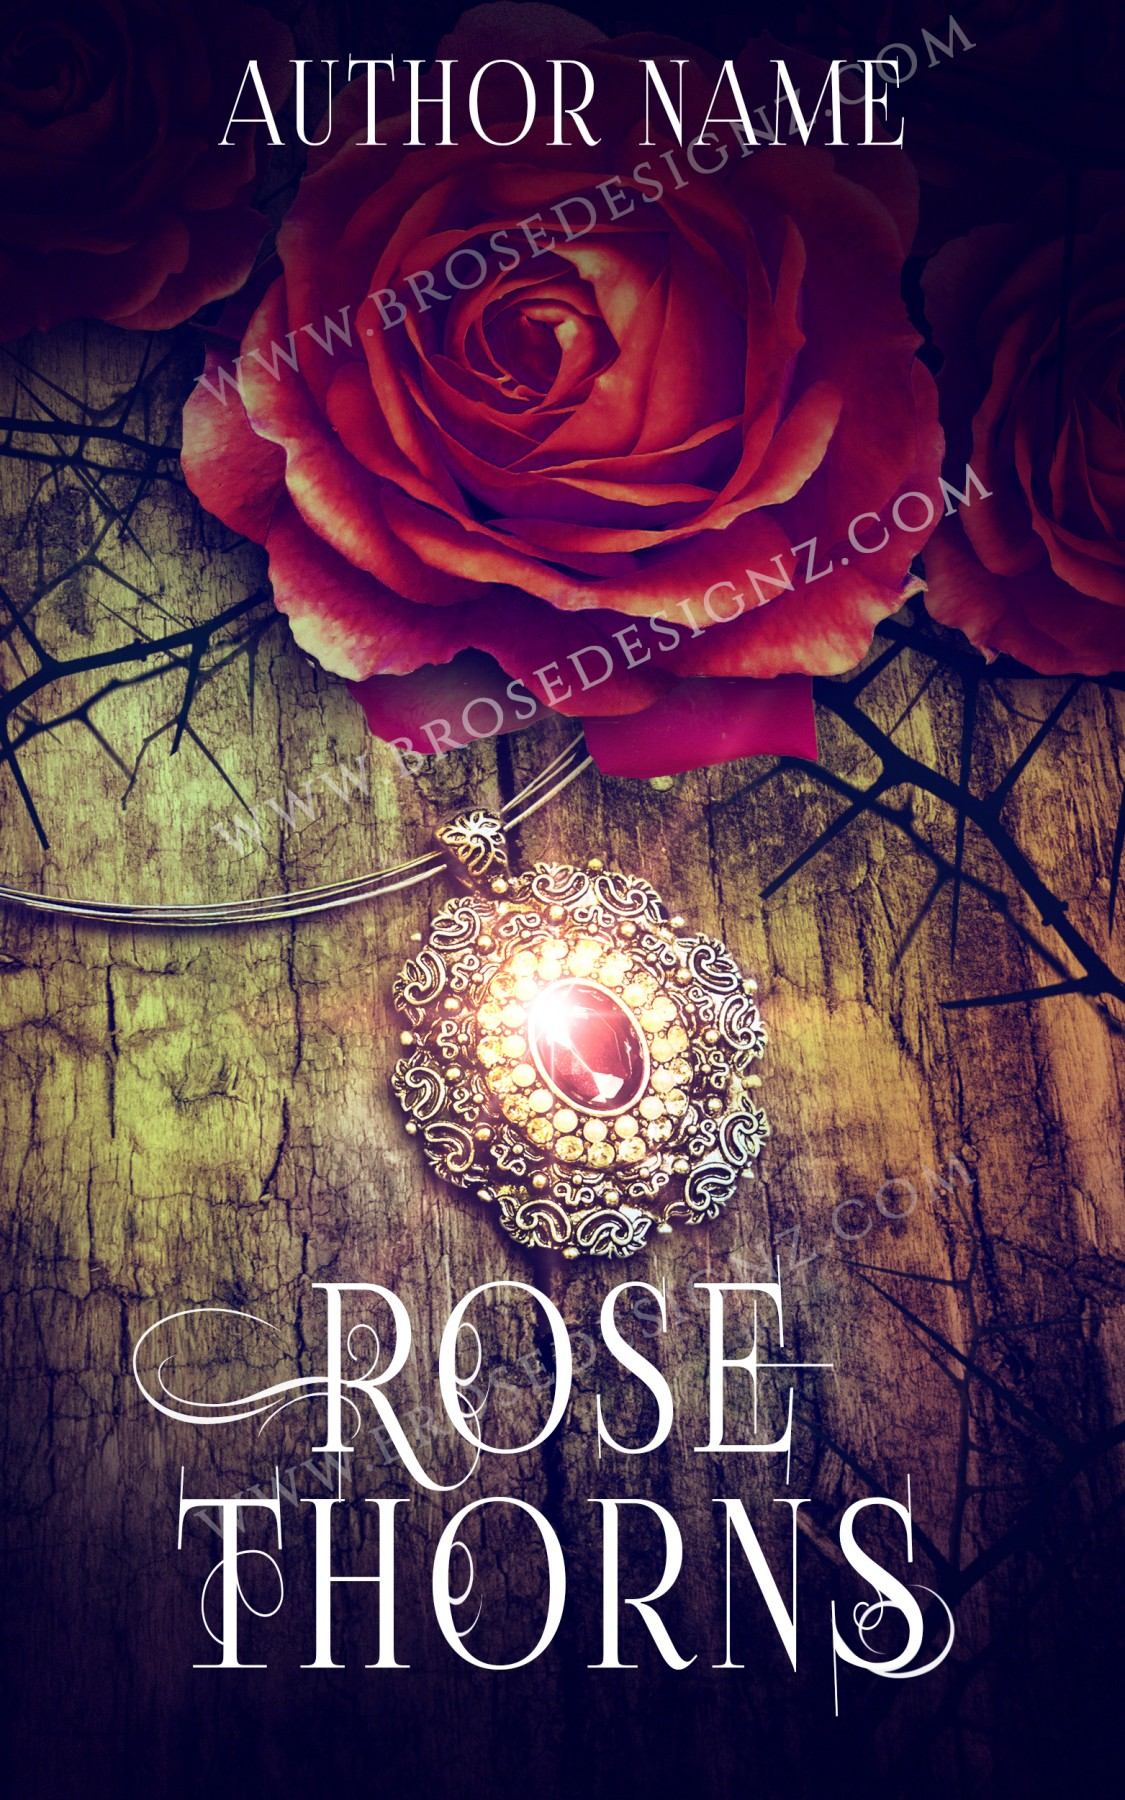 Book Cover Forros S : Rose thorns the book cover designer